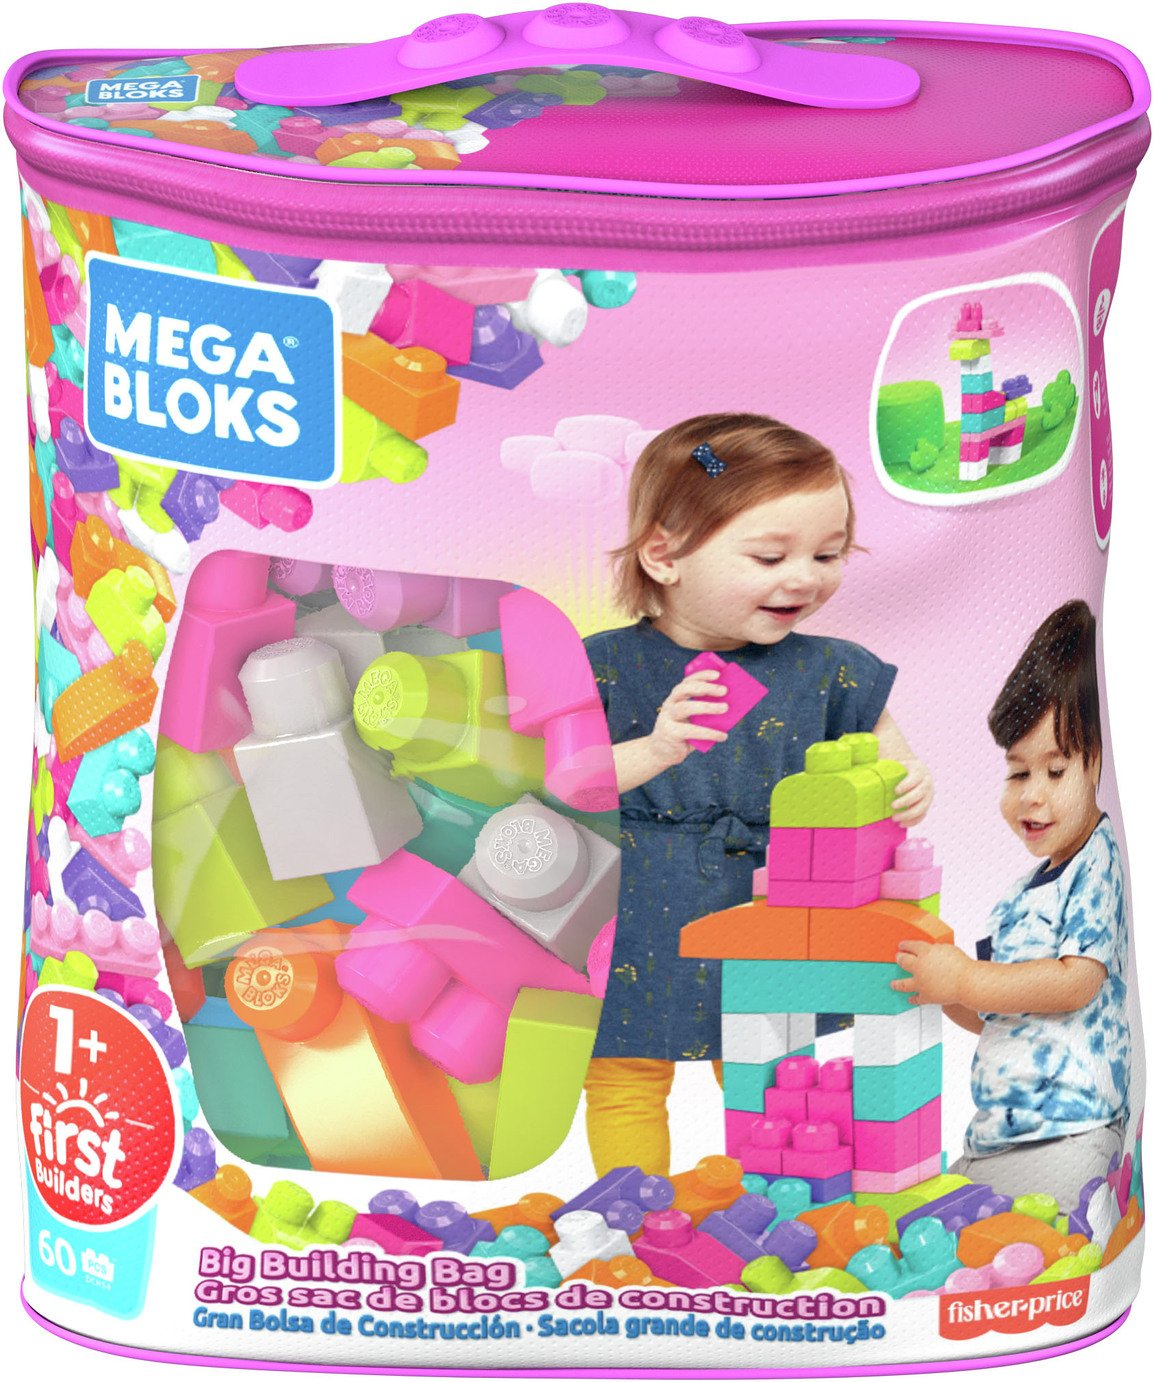 Mega Bloks - First Builders Big Building Bag - Pink